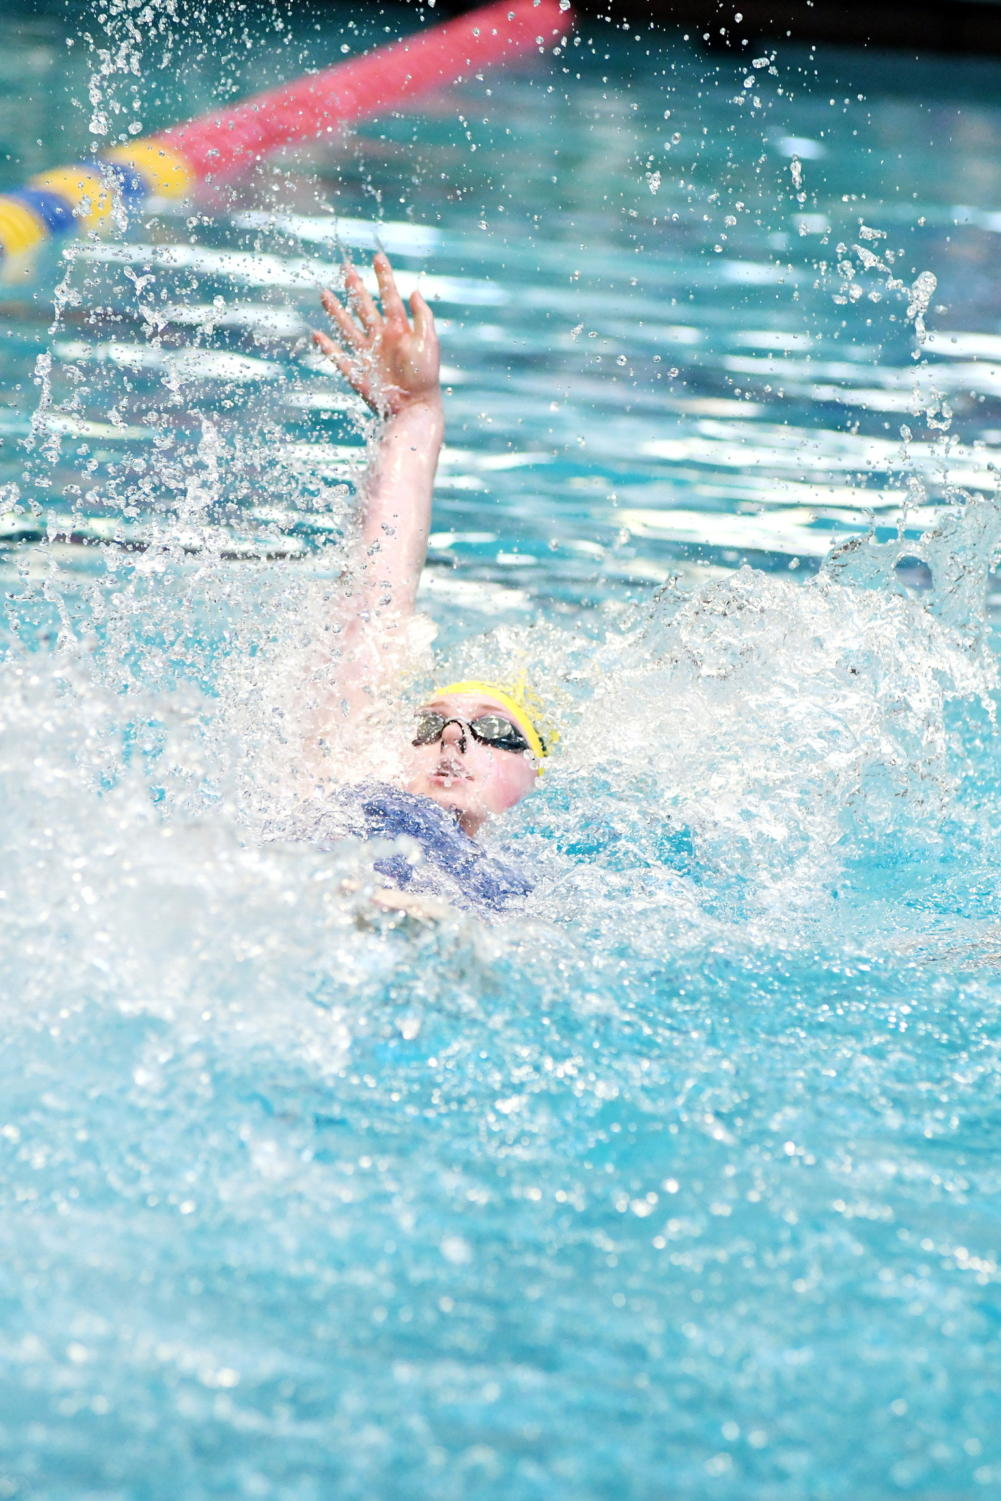 Ranked 35th in the state, Laura Levine '19 is a major contributor to the swim team.